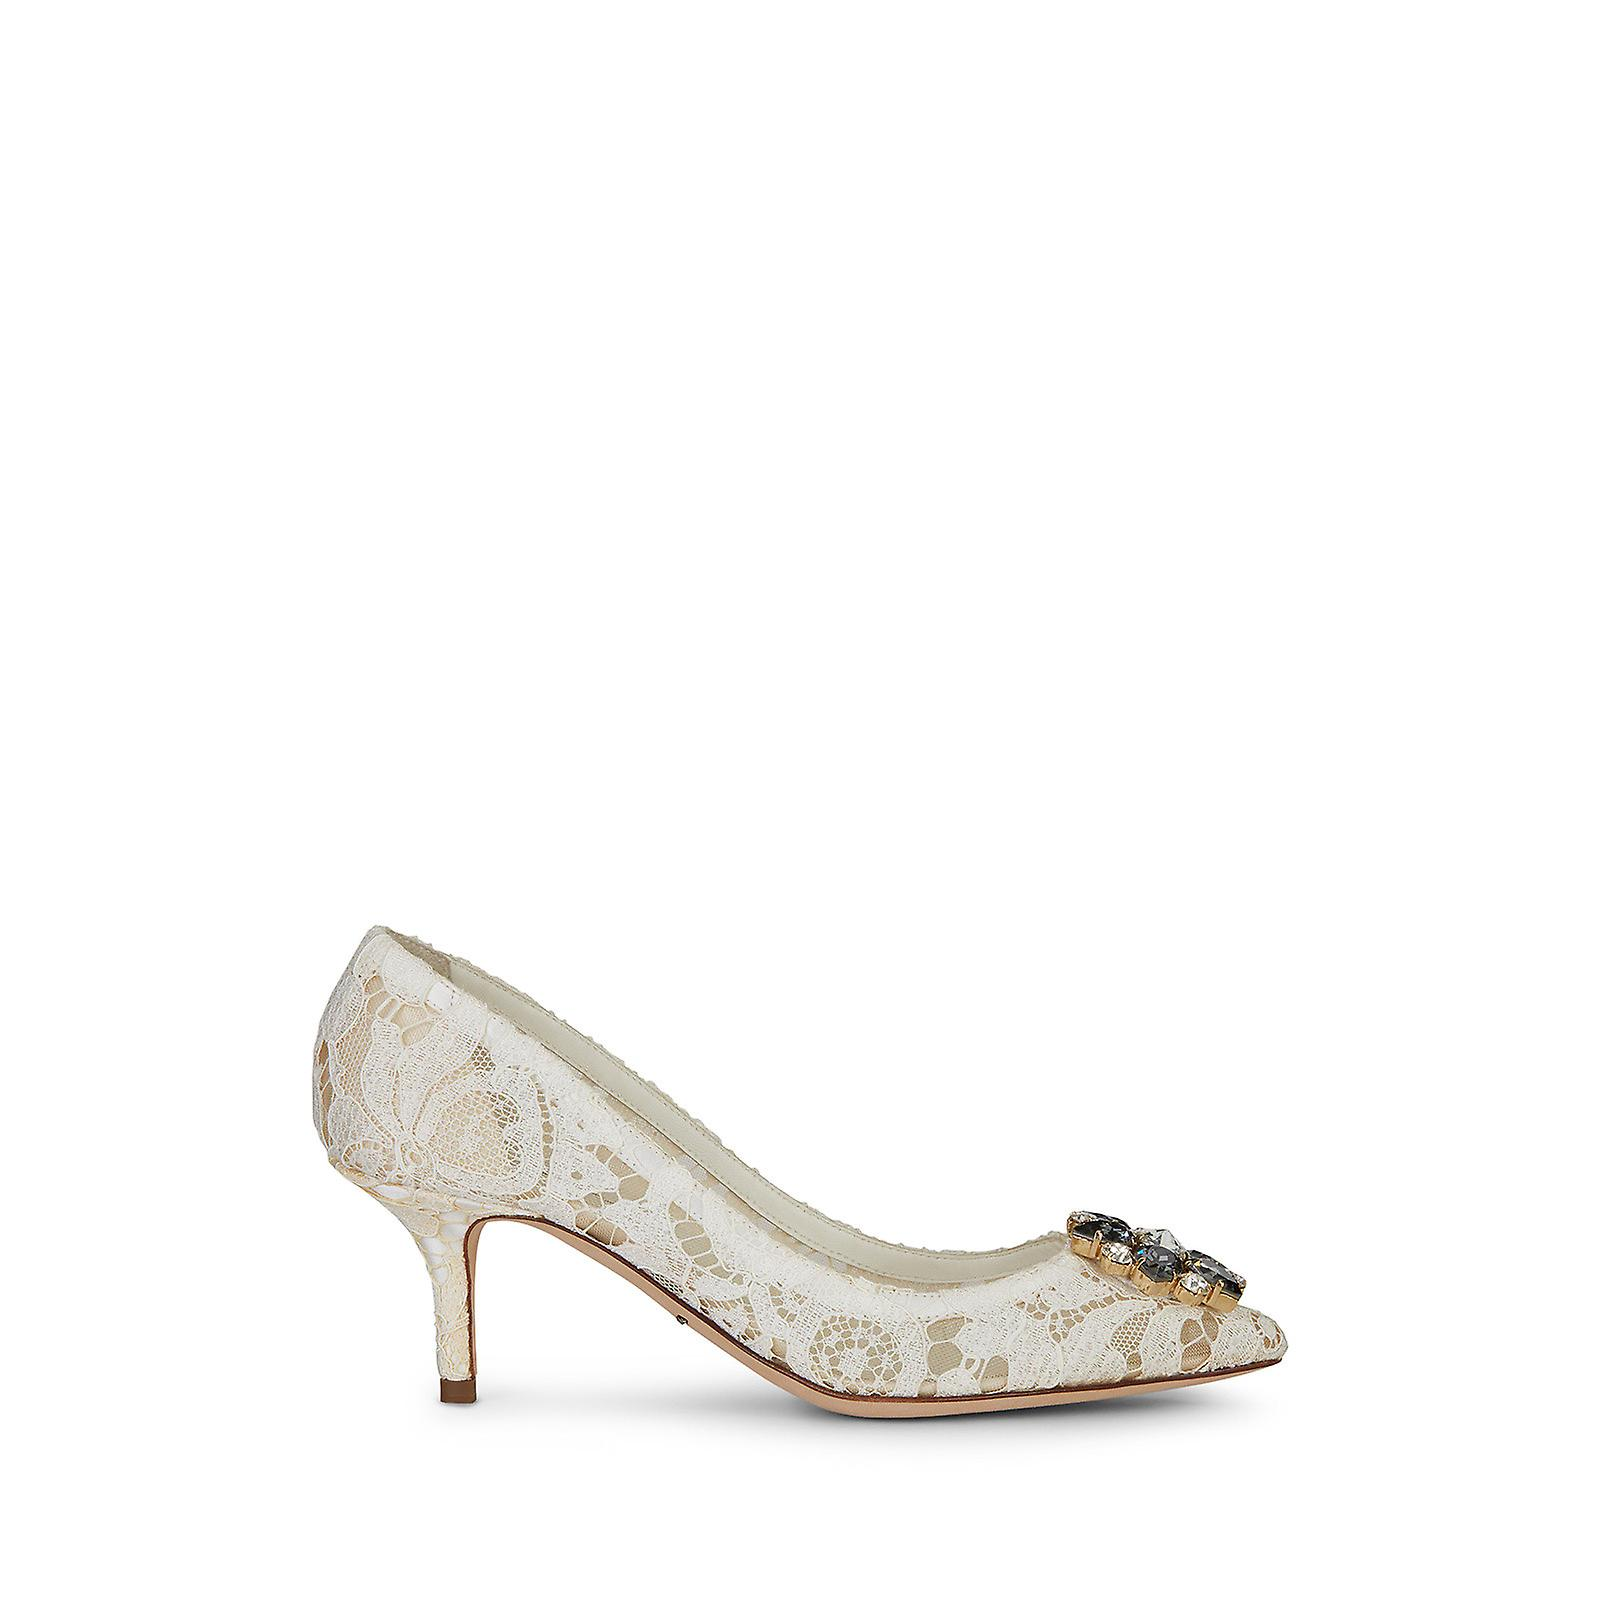 Dolce & Gabbana Mid Stiletto Heel Pumps In Satin And White Taormina Lace 8GRJ9